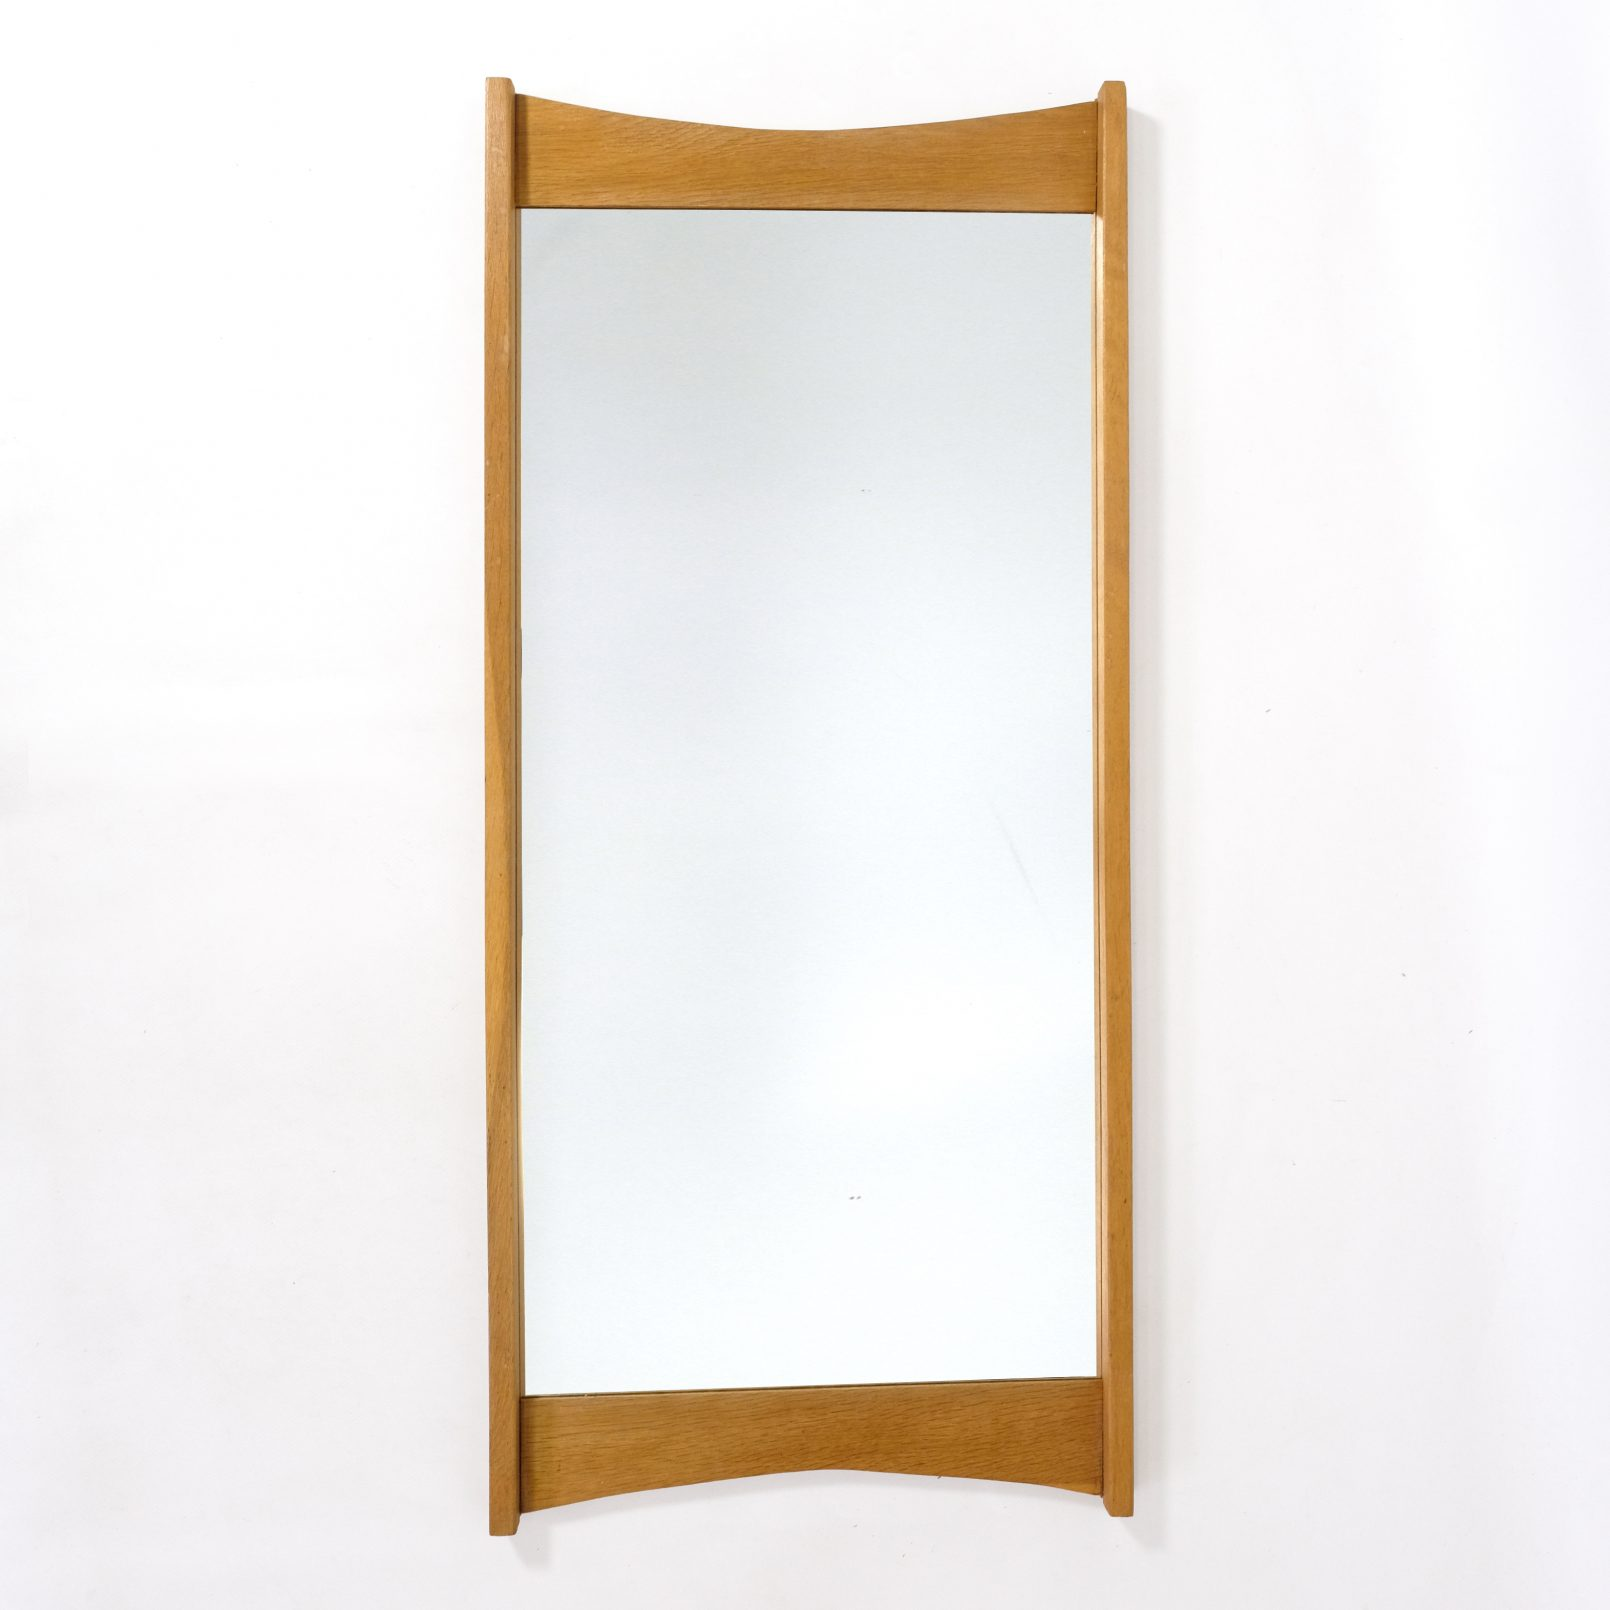 Large oak framed mirror, 95x42cm.